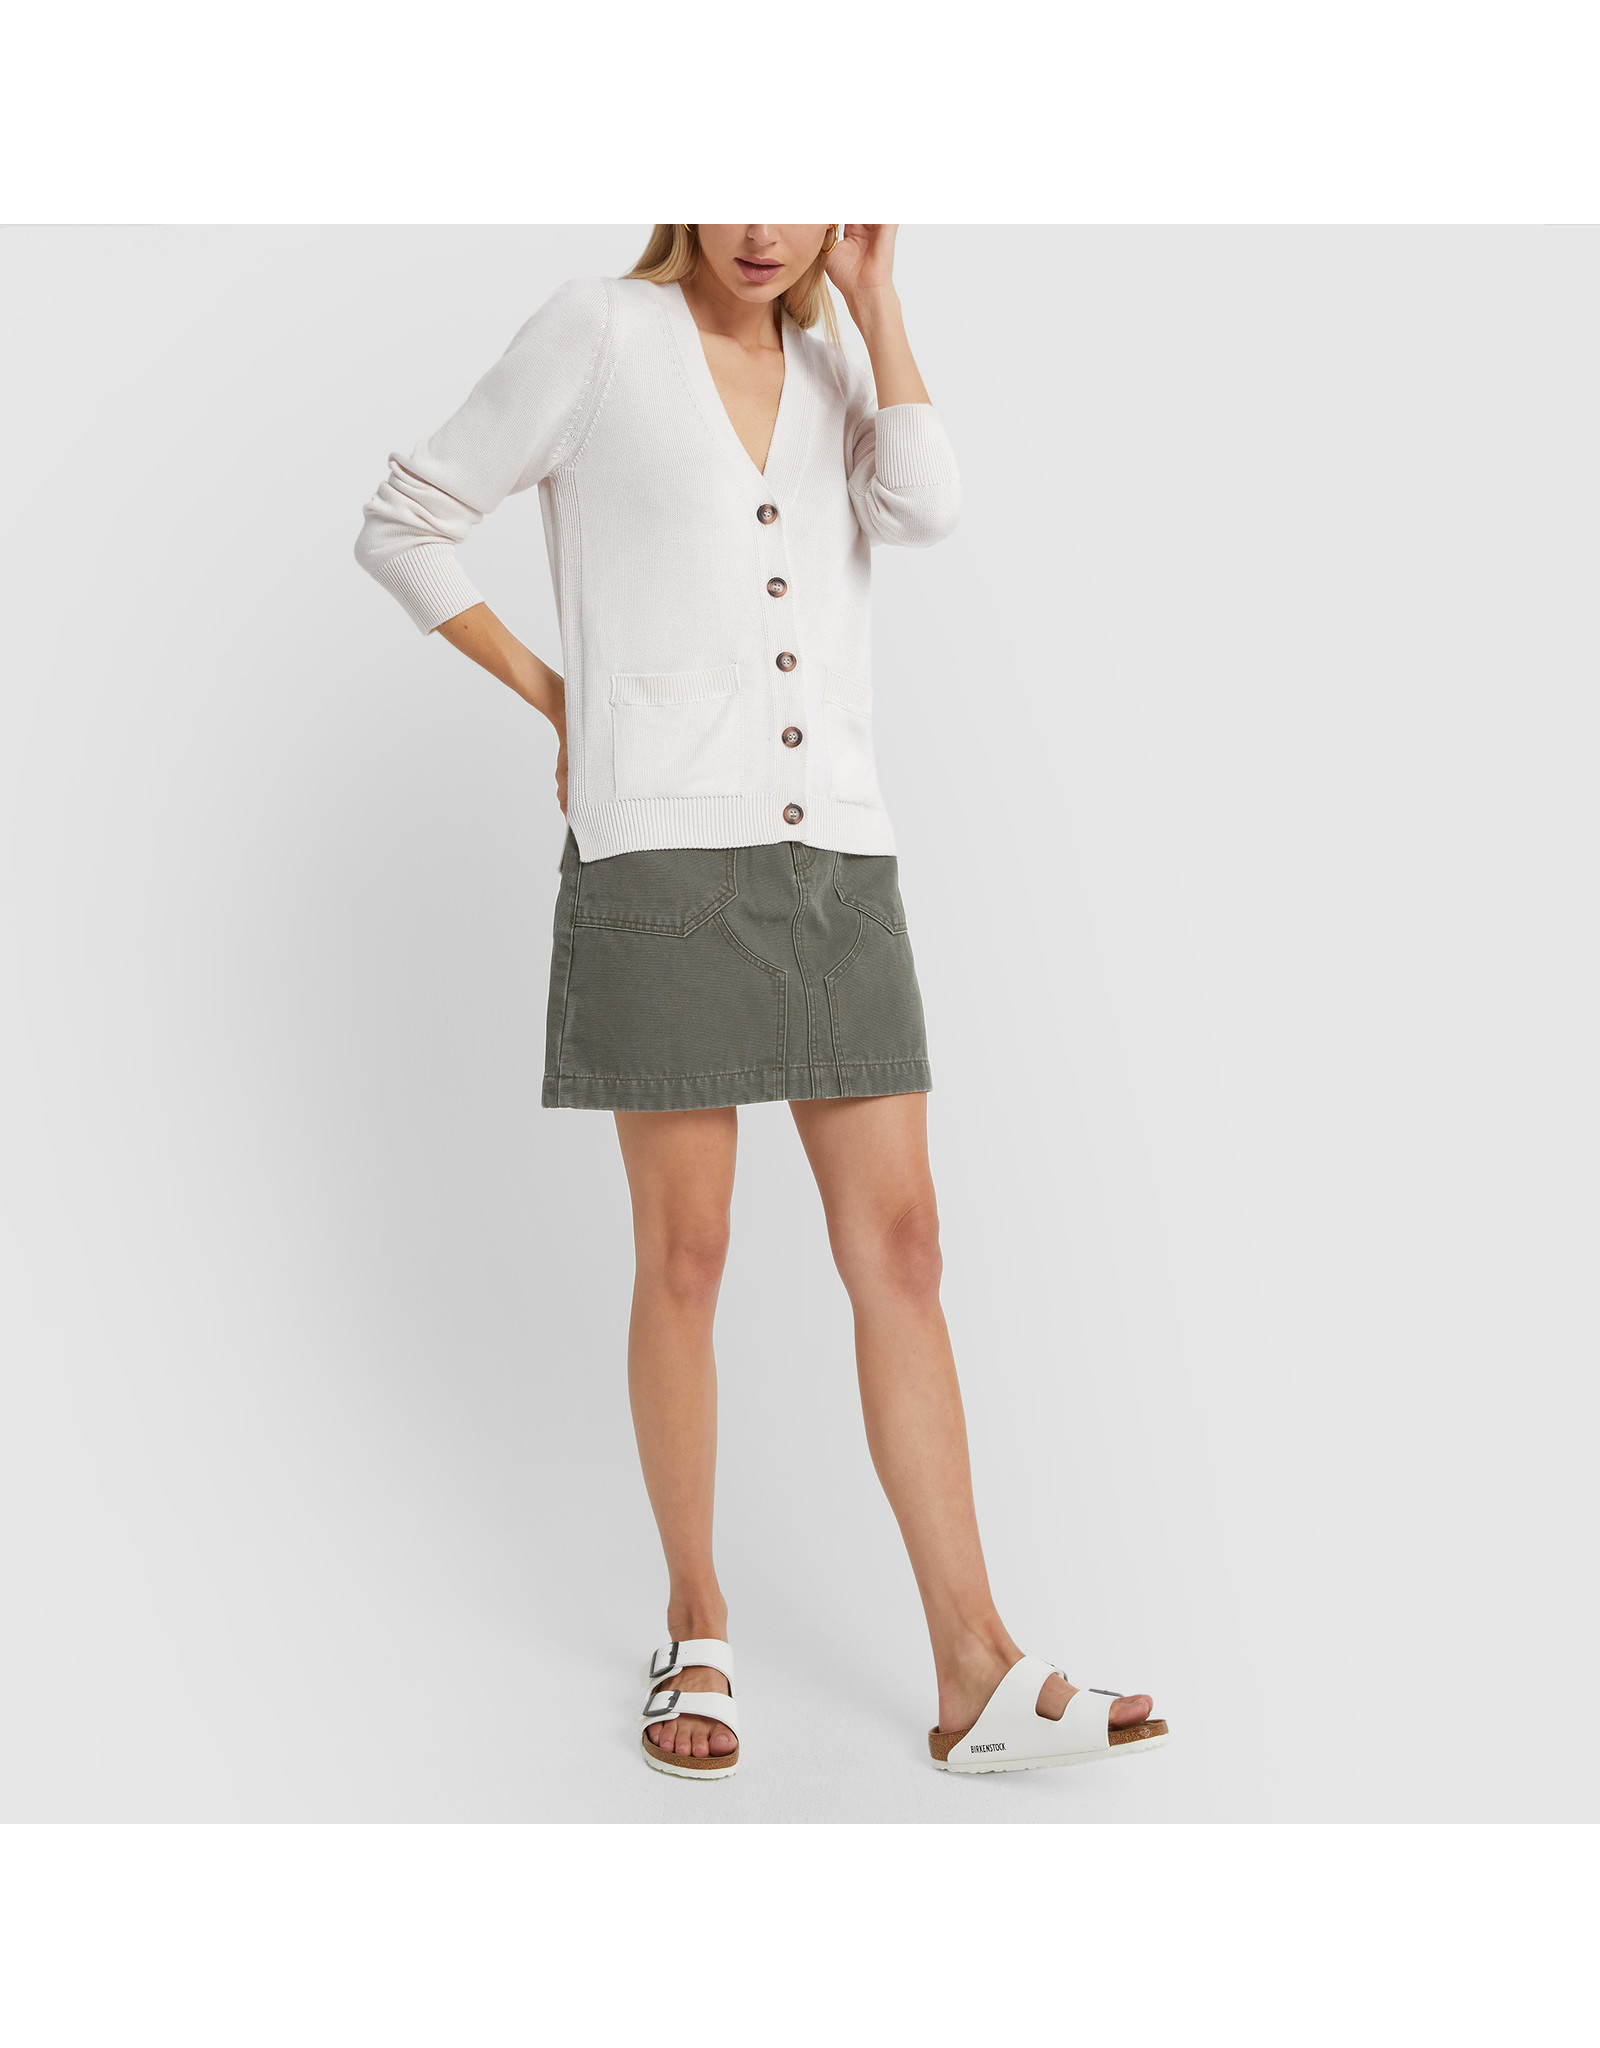 G. Label G. Label Lightweight Erica Cardigan (Color: White, Size: S)